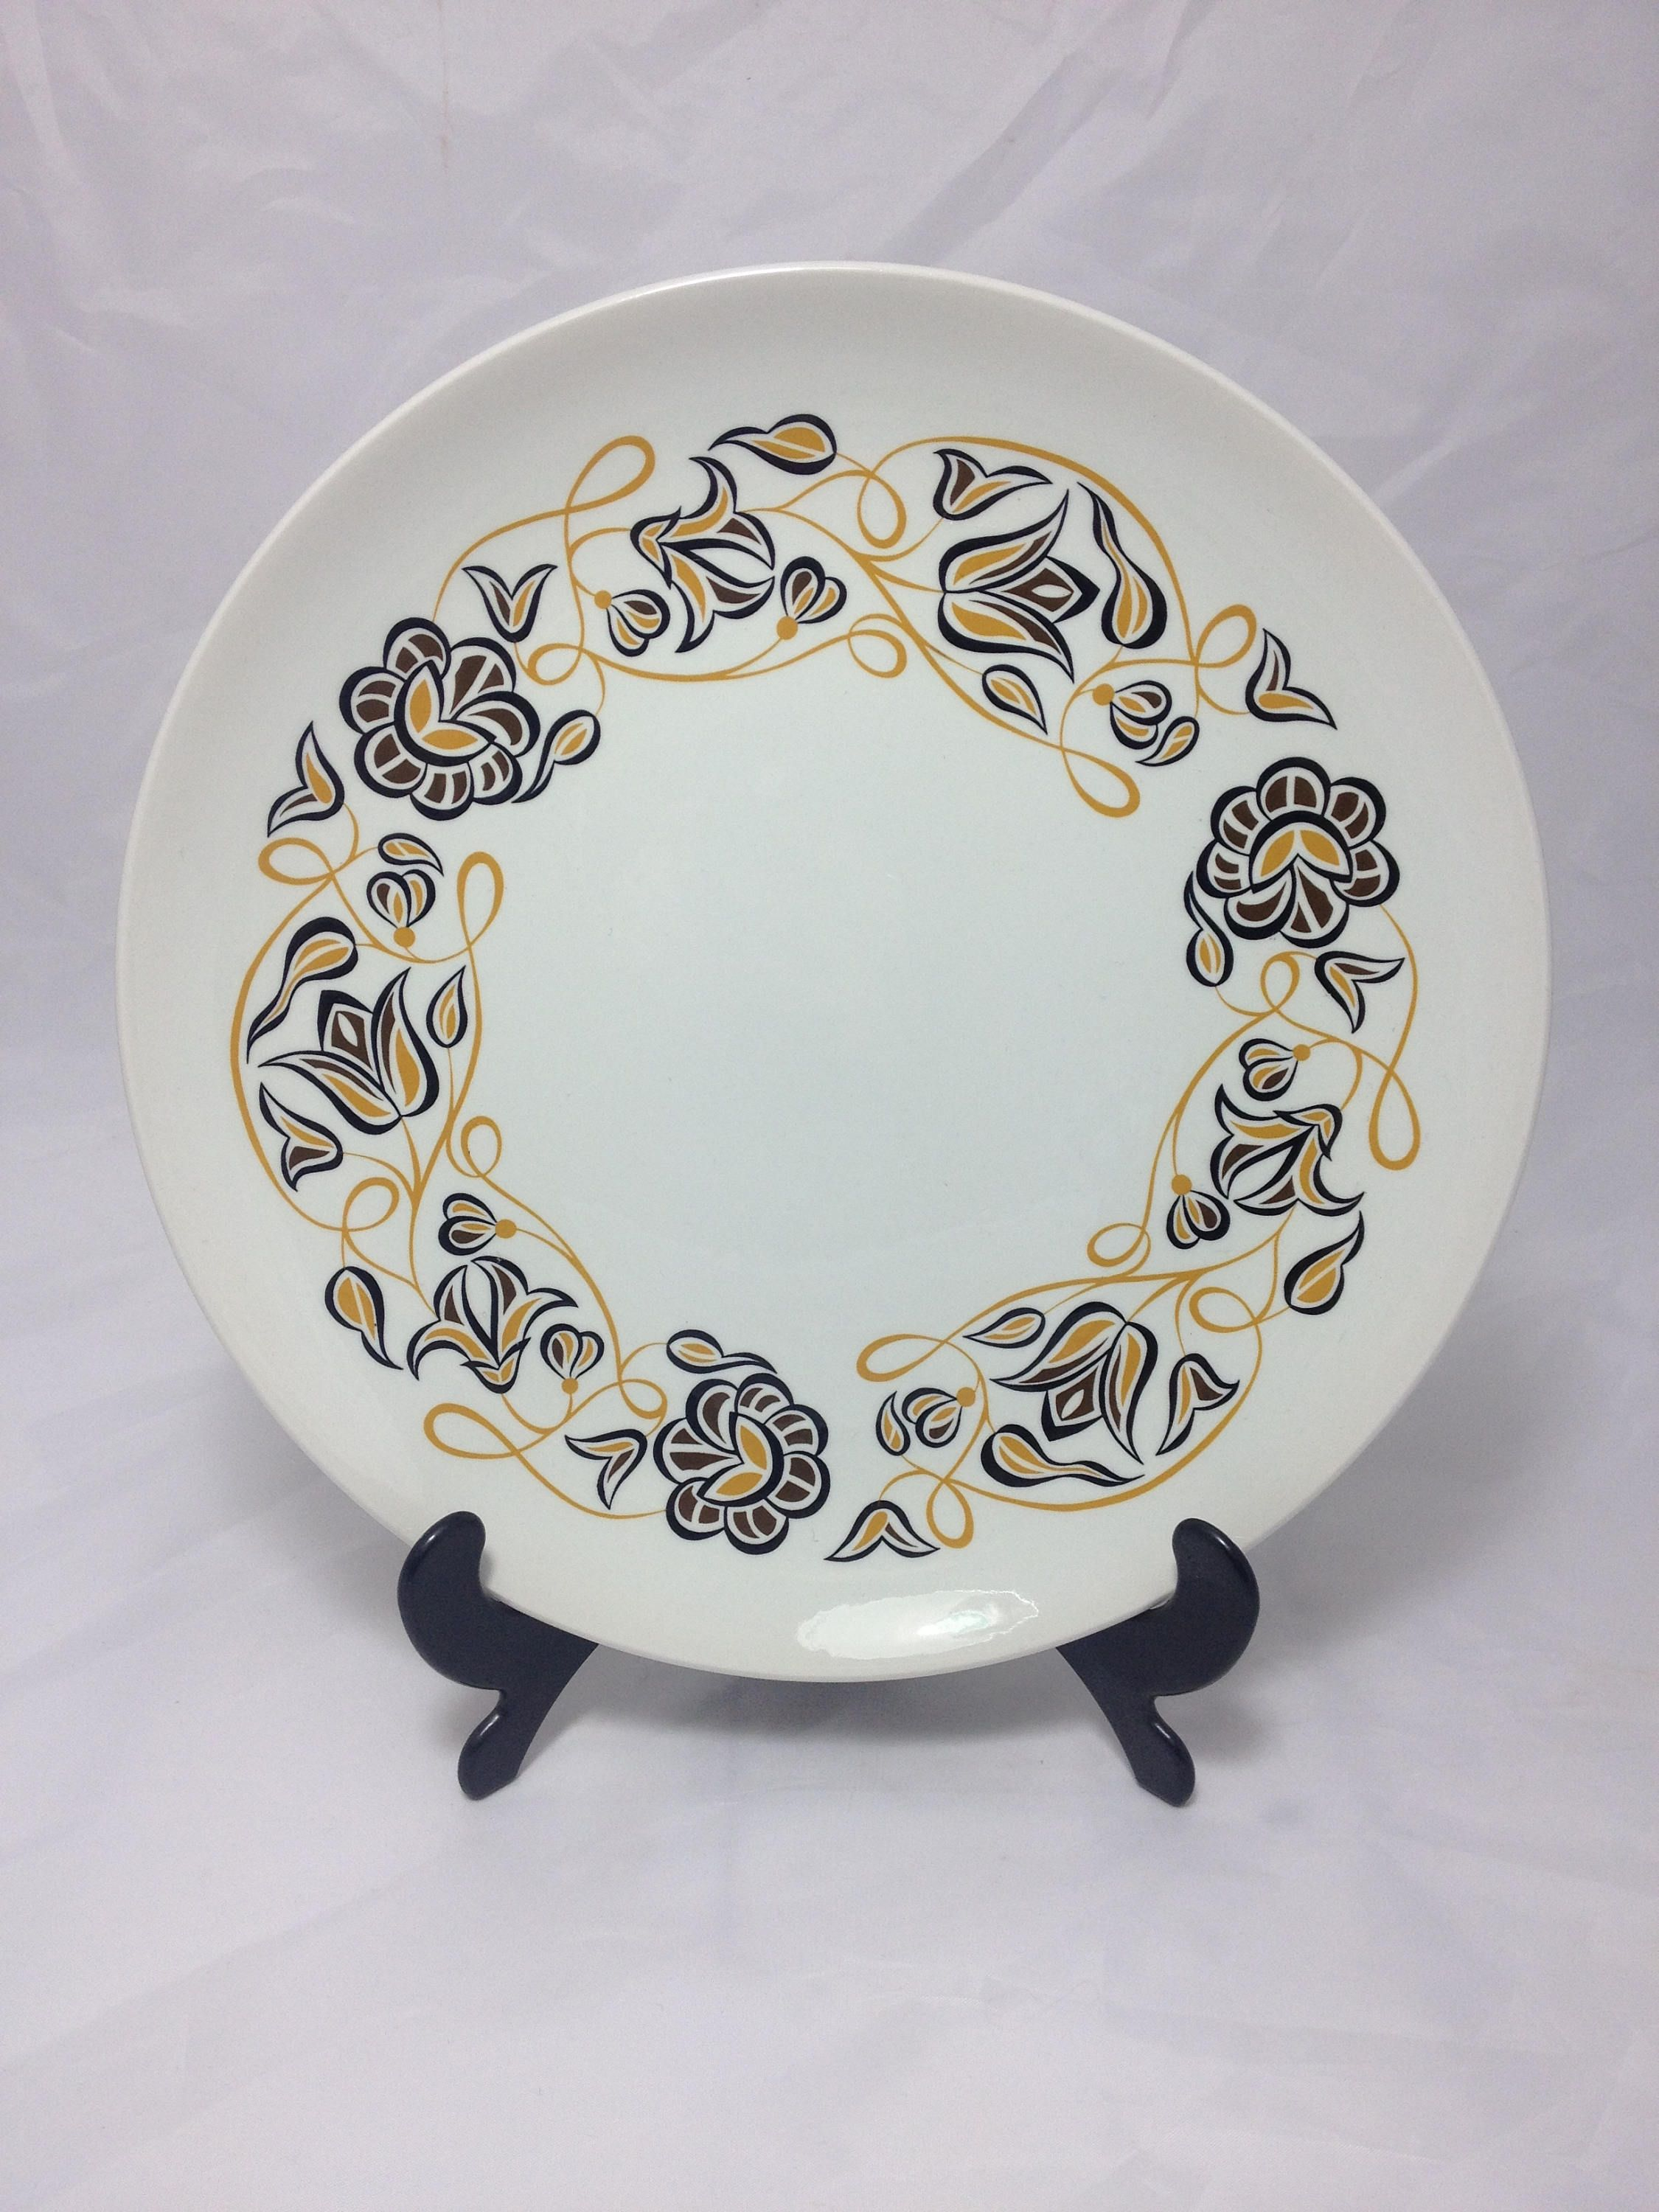 Poole Pottery Dinner Plate Desert Song Pattern Contour Shape Plate 1960\u0027s Mid Century Modern Vintage by & Poole Pottery Dinner Plate Desert Song Pattern Contour Shape Plate ...